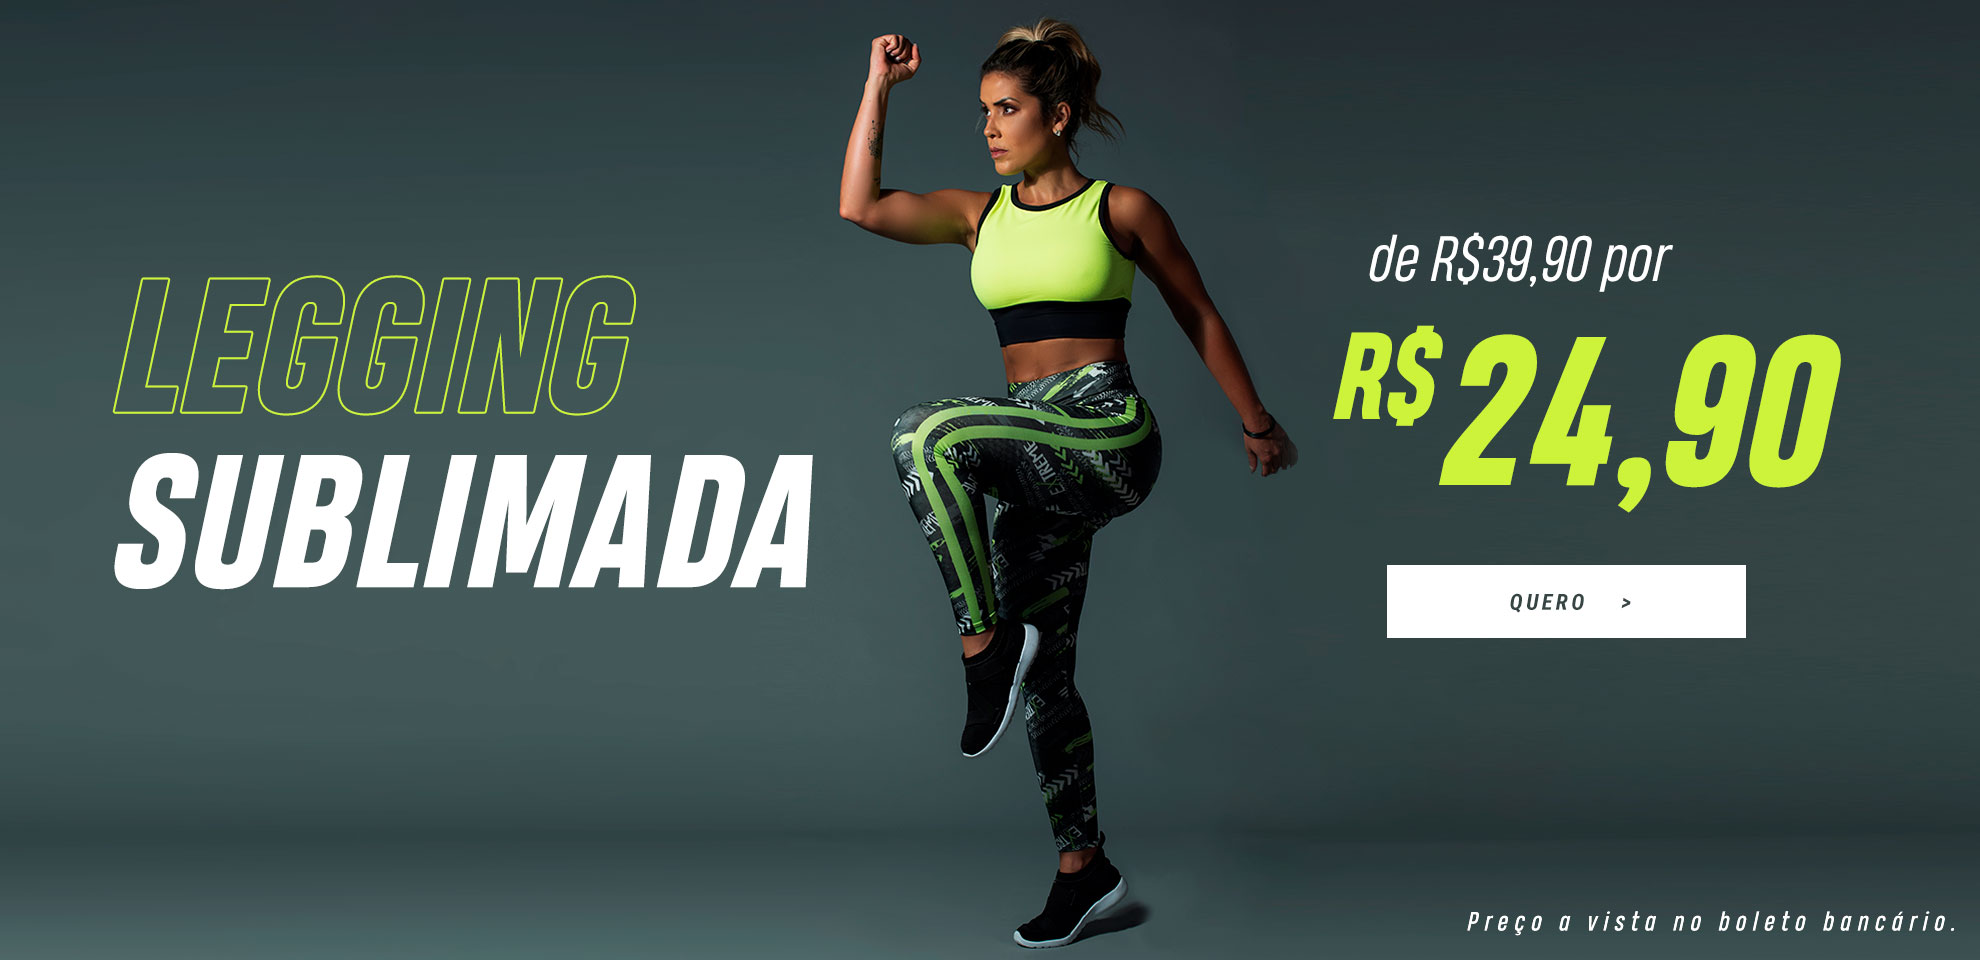 Legging sublimada